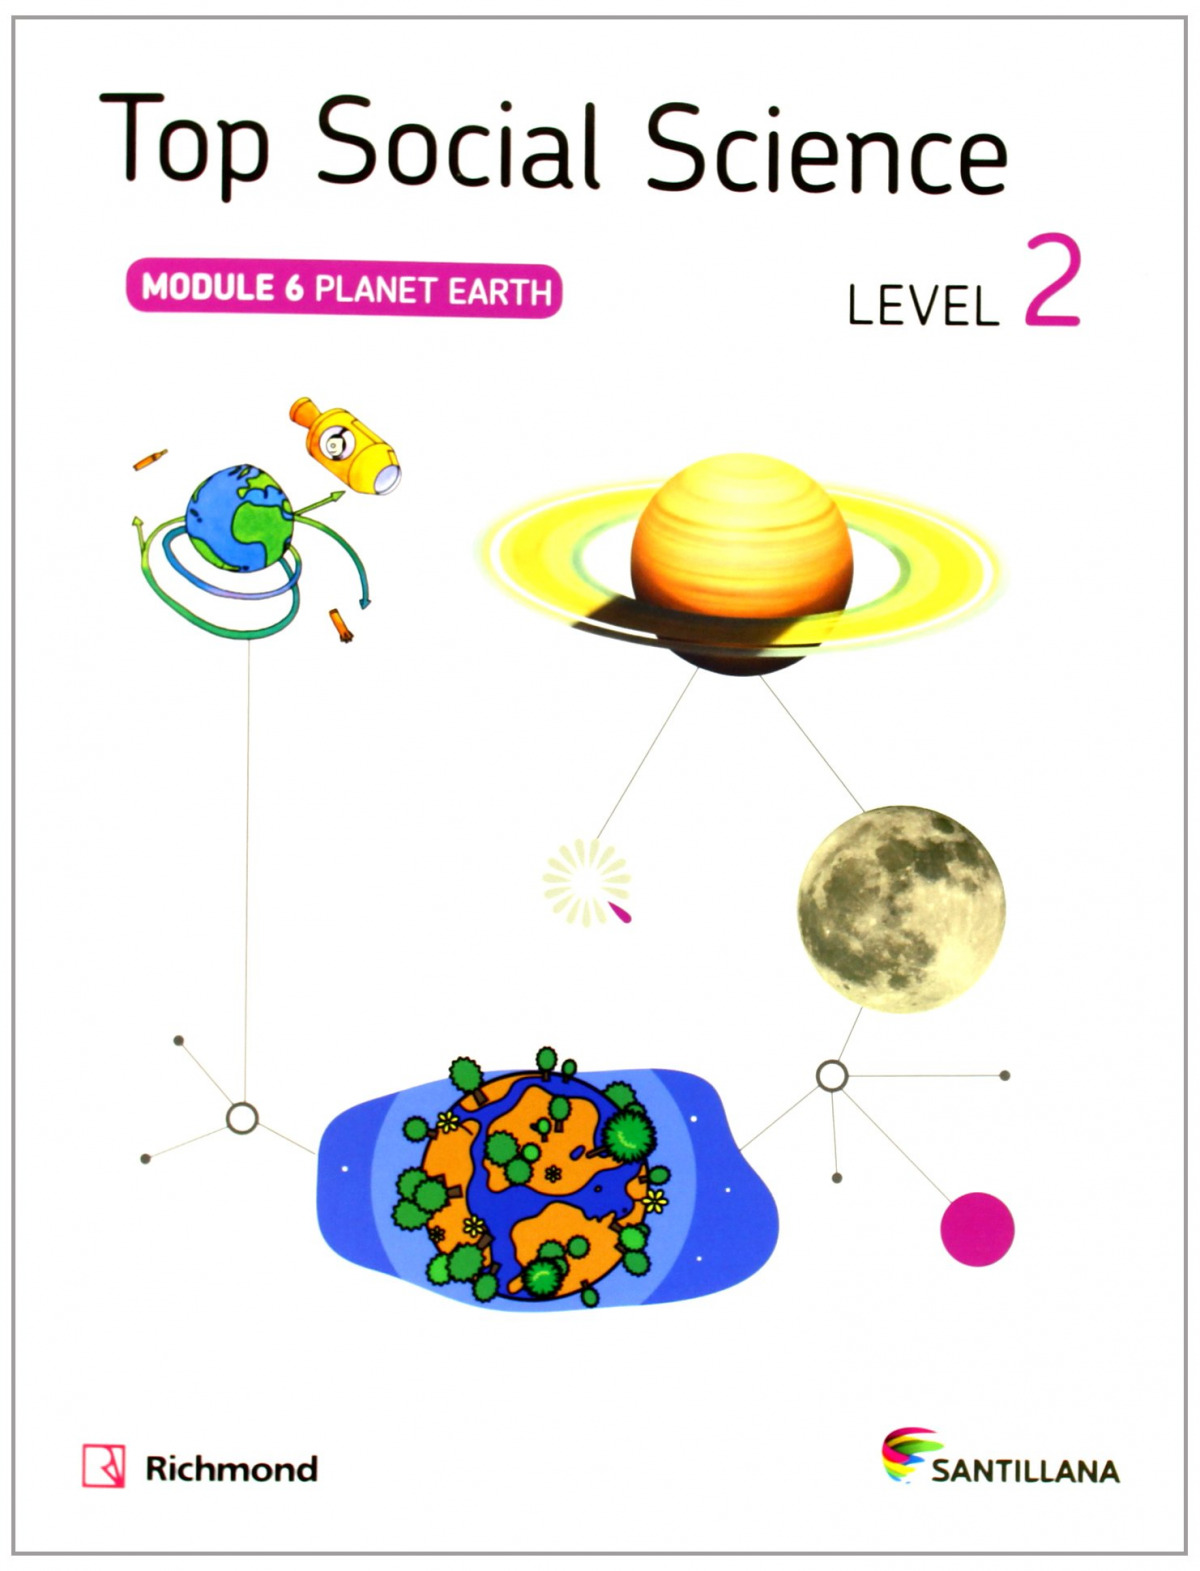 Top social science 2. Planet earth